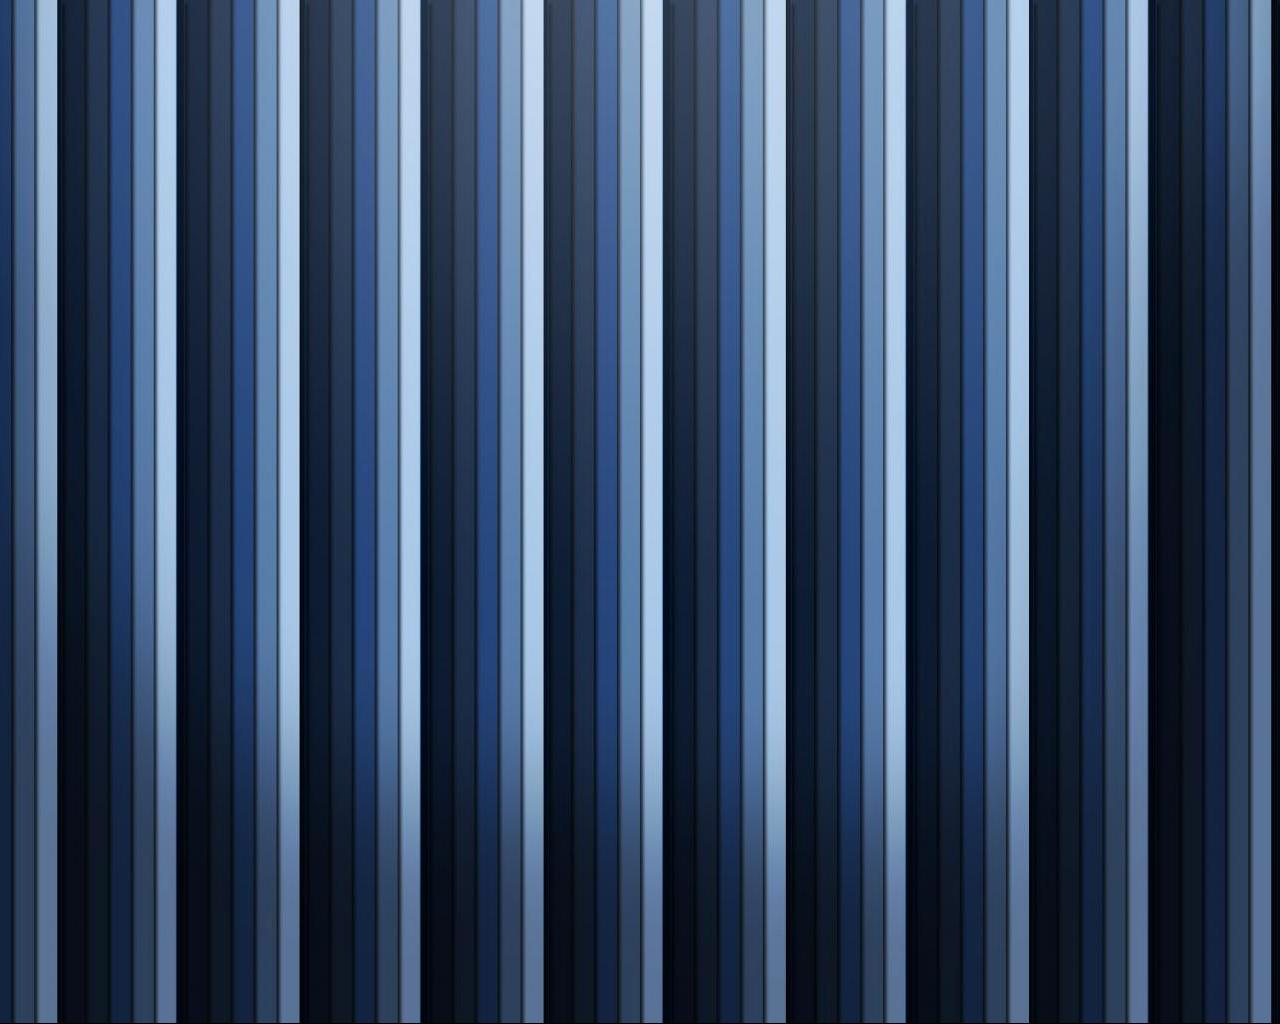 Blue Stripe Wallpaper Navy Blue Stripe Wallpaper Blue Wallpapers 1280x1024